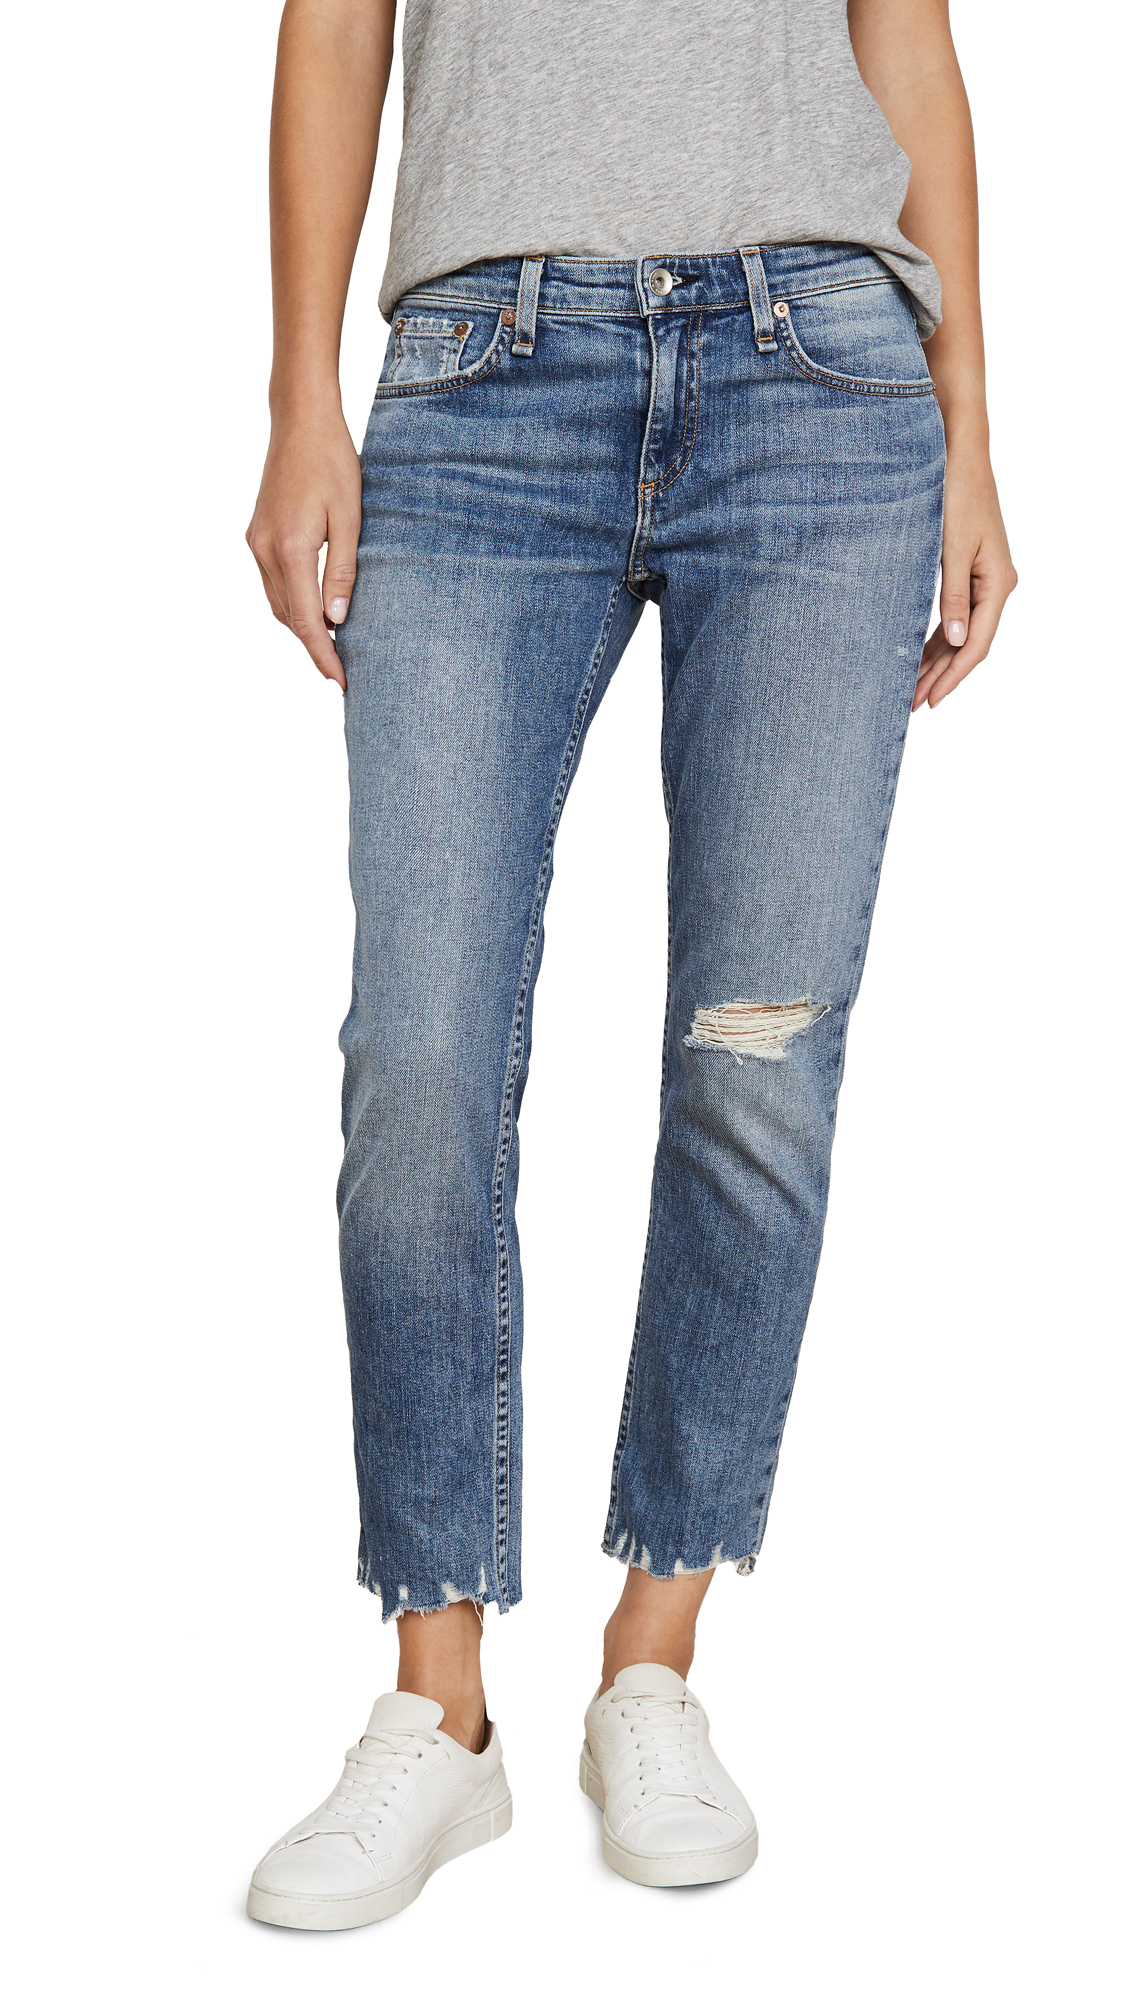 Buy Rag & Bone/JEAN online - photo of Rag & Bone/JEAN Dre Low Rise Slim Boyfriend Jeans